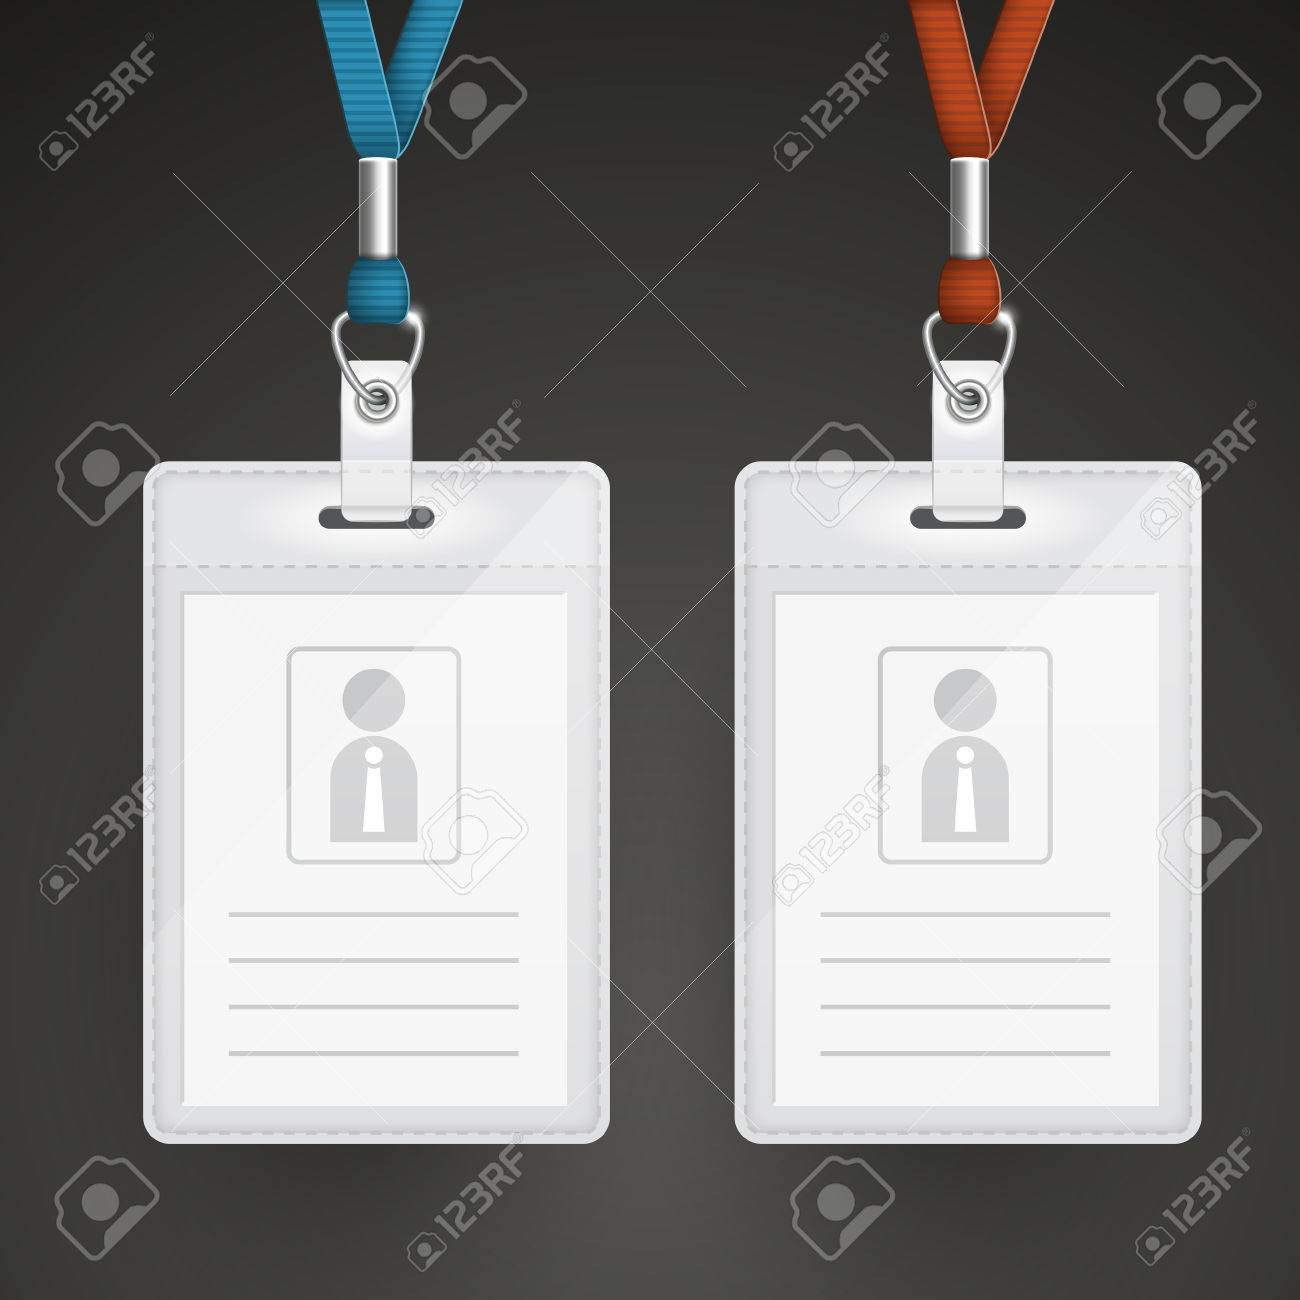 Blank Identification Cards Set Template Isolated On Black Royalty ...